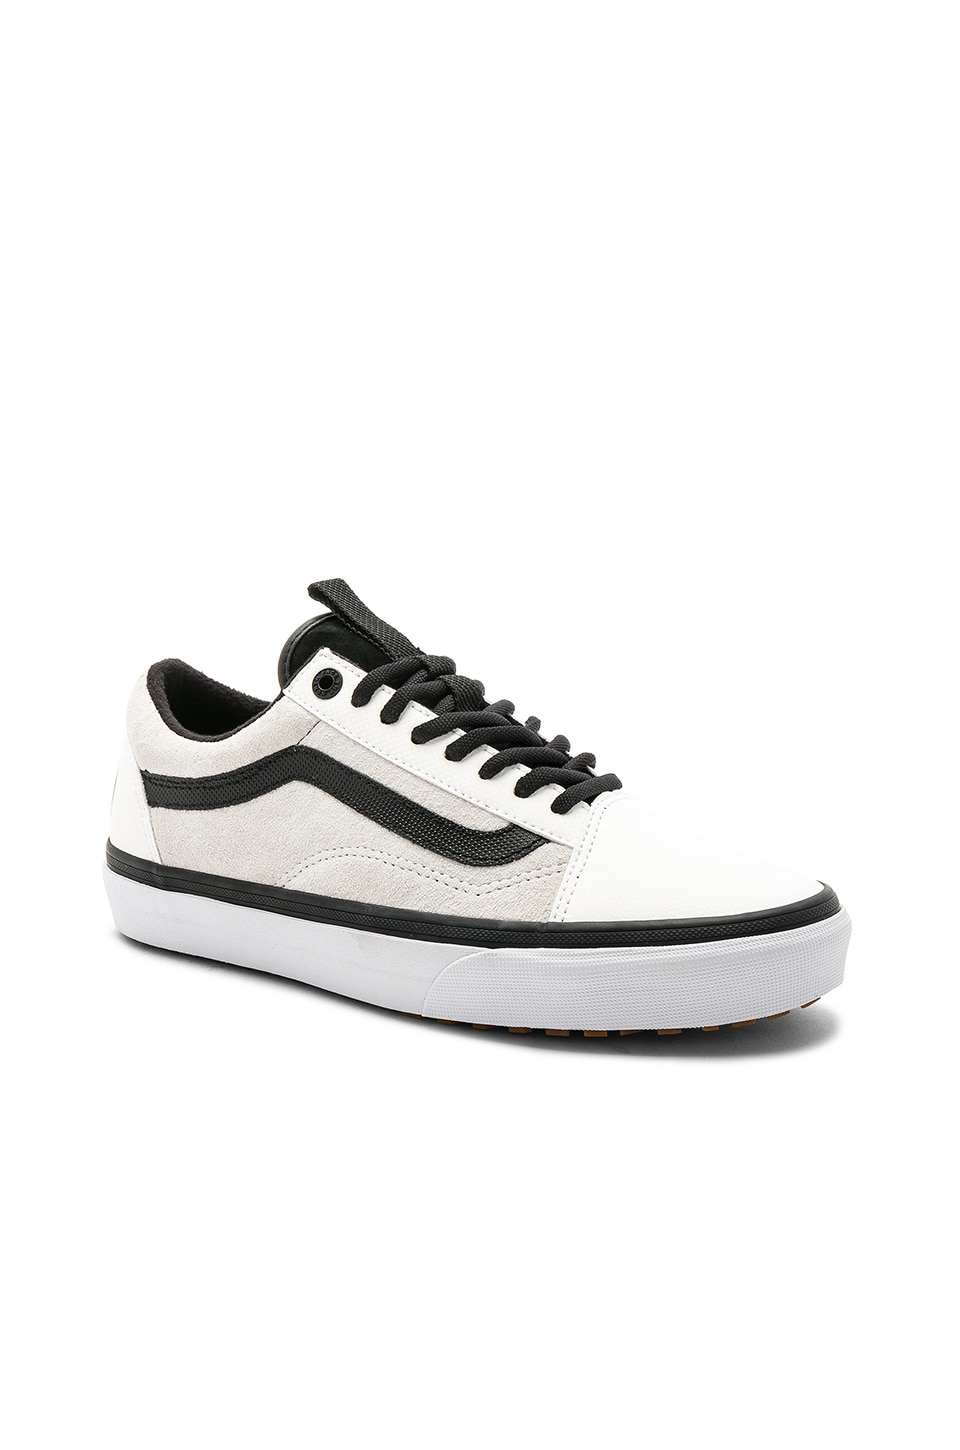 69c0e85d346ad4 Vans x The North Face Old Skool MTE DX in TNF   True White   Black ...